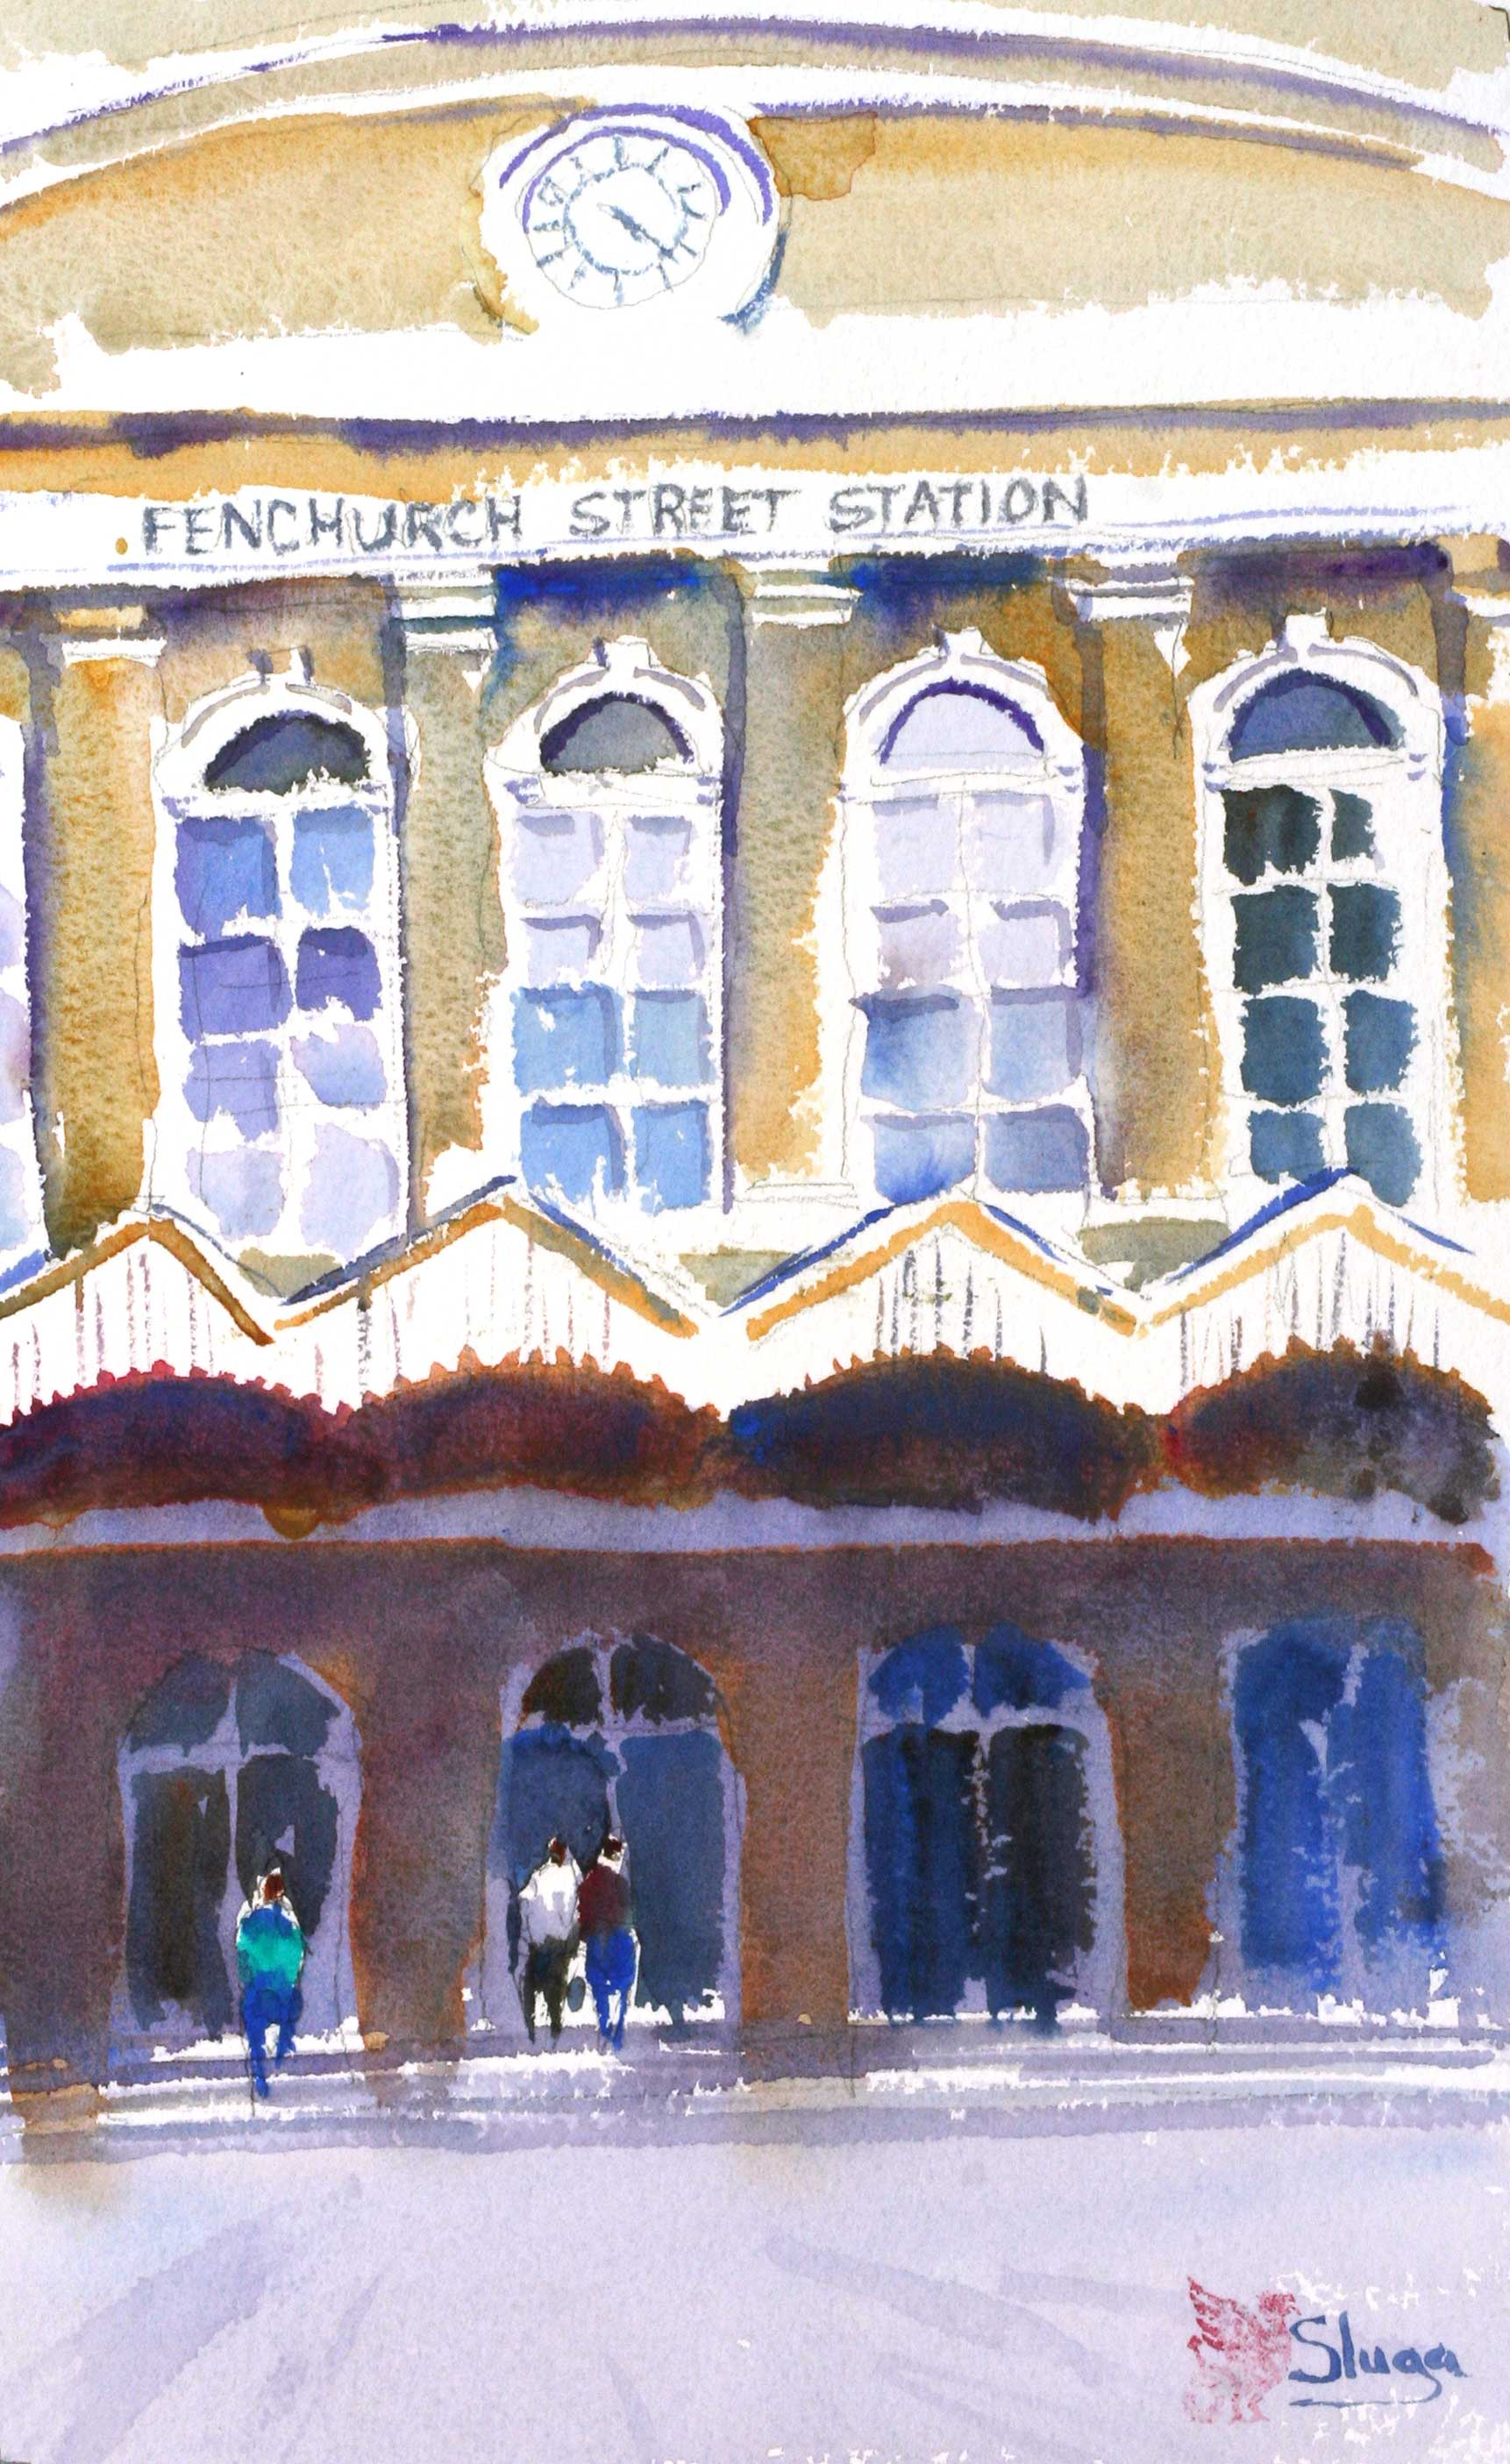 FENCHURCH-STREET-STATION.jpg